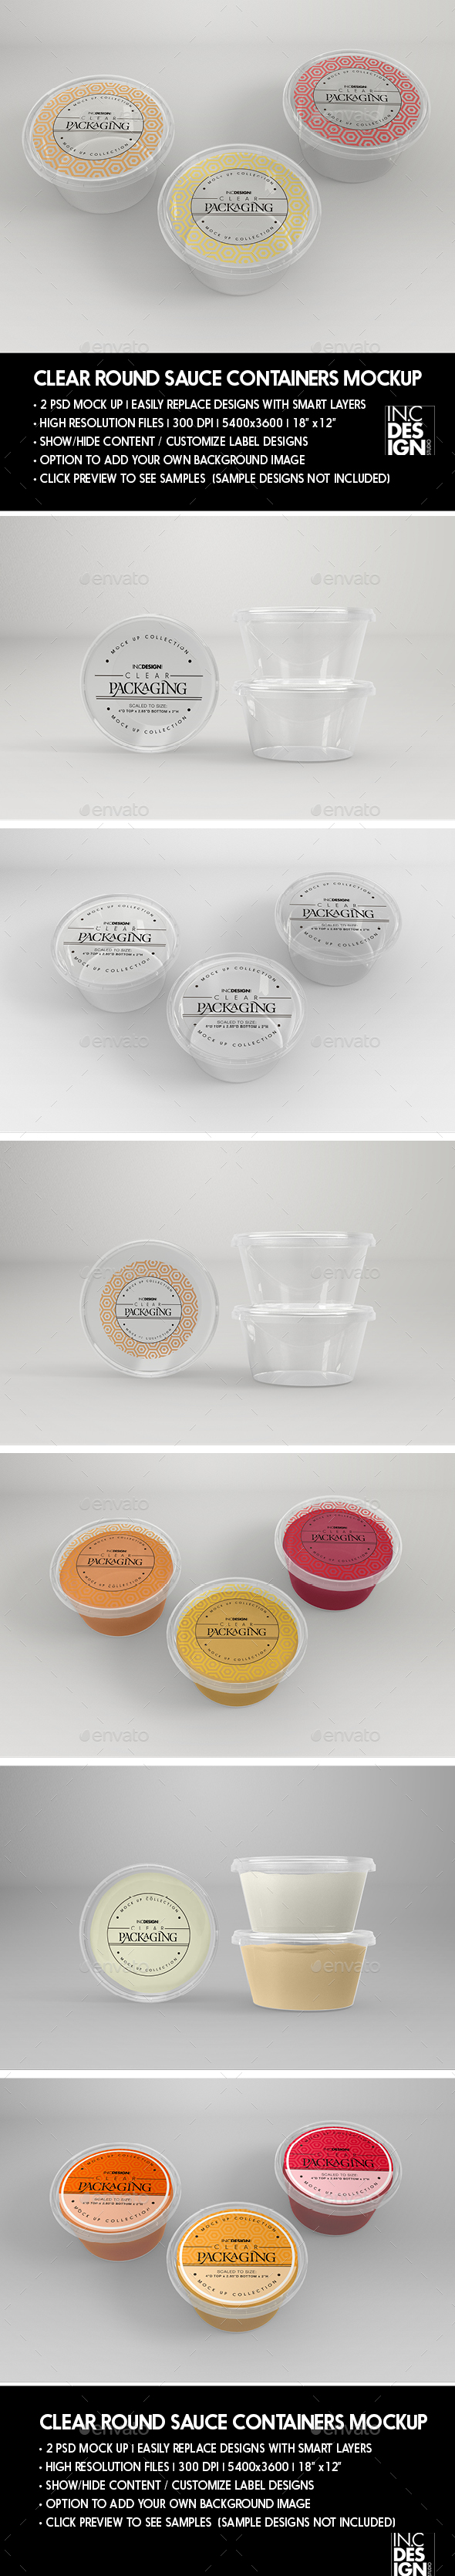 Clear Round Sauce Containers Packaging Mockup - Packaging Product Mock-Ups